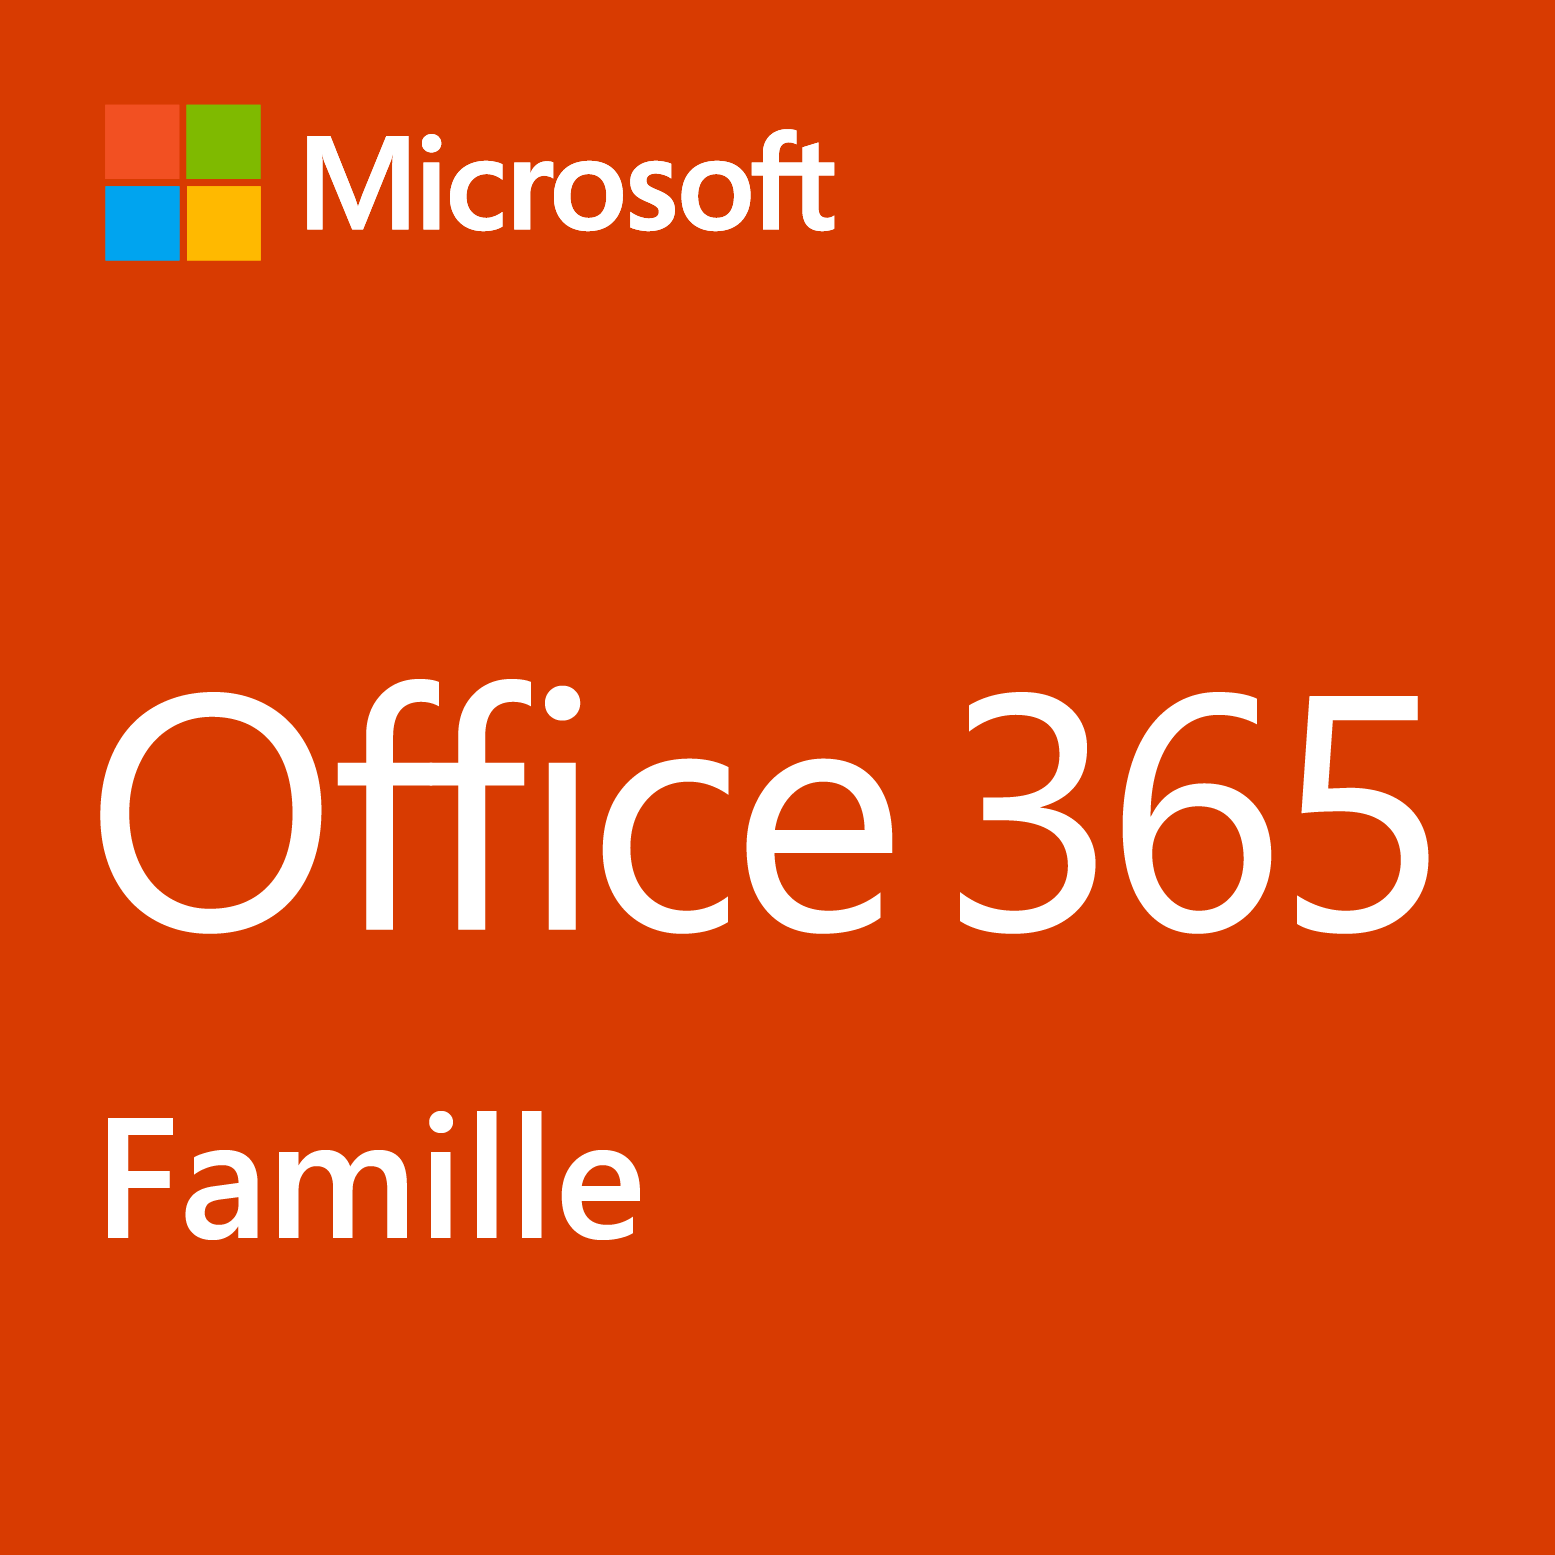 Microsoft office famille et etudiant interesting dcouvrez skydrive with microsoft office - Pack office gratuit etudiant ...